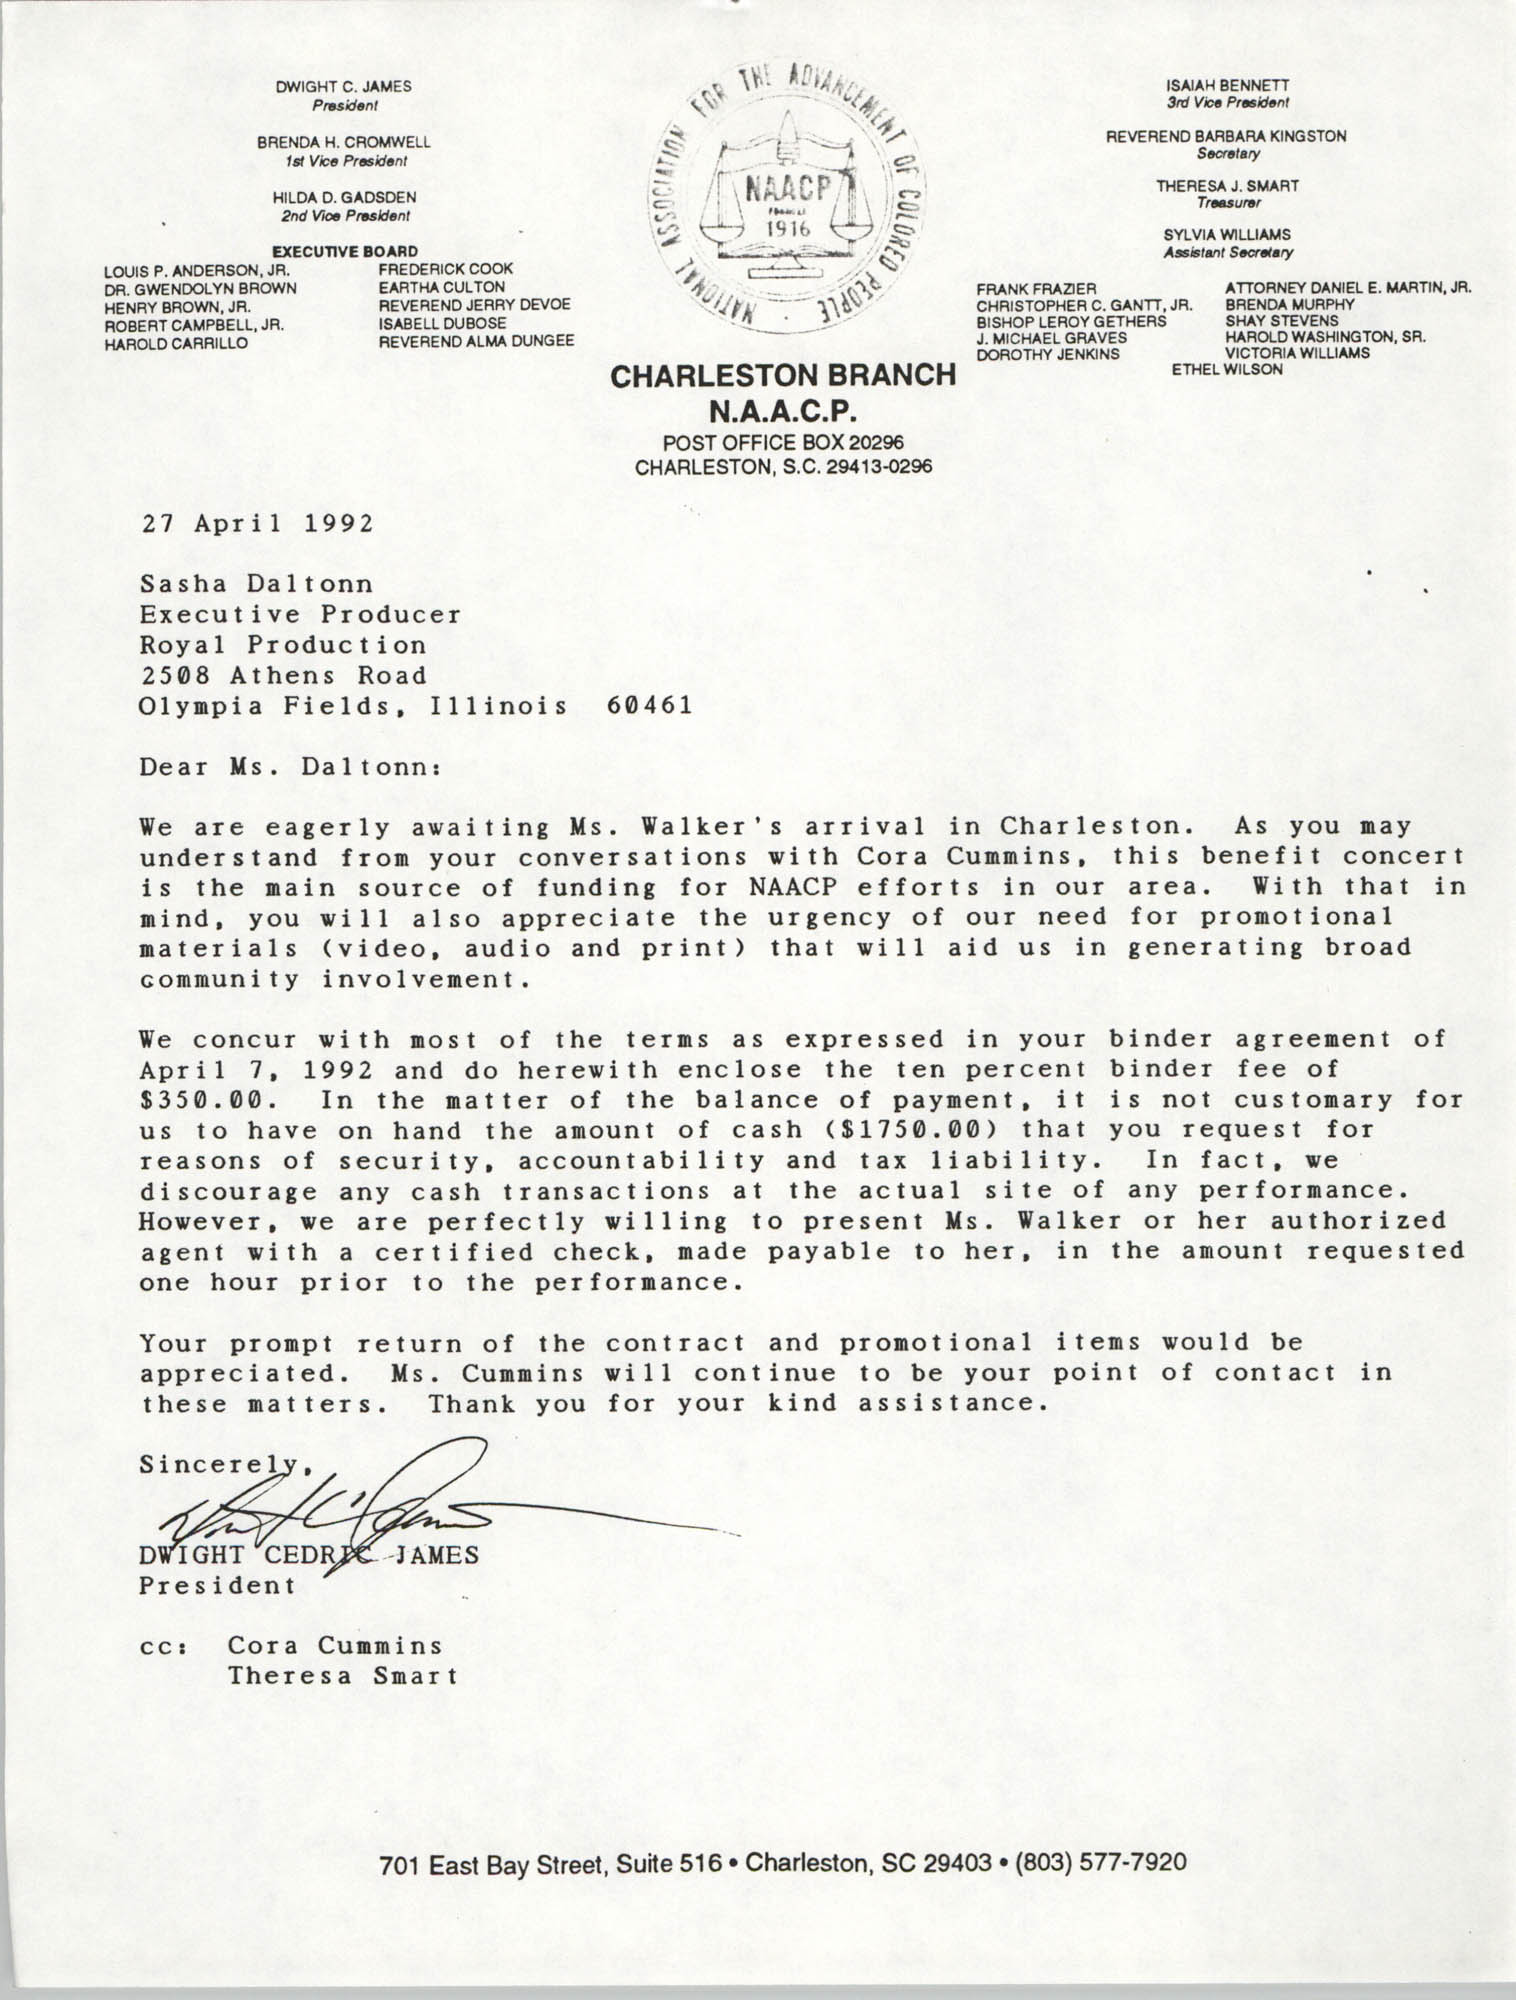 Letter from Dwight C. James to Sasha Daltonn, April 27, 1992